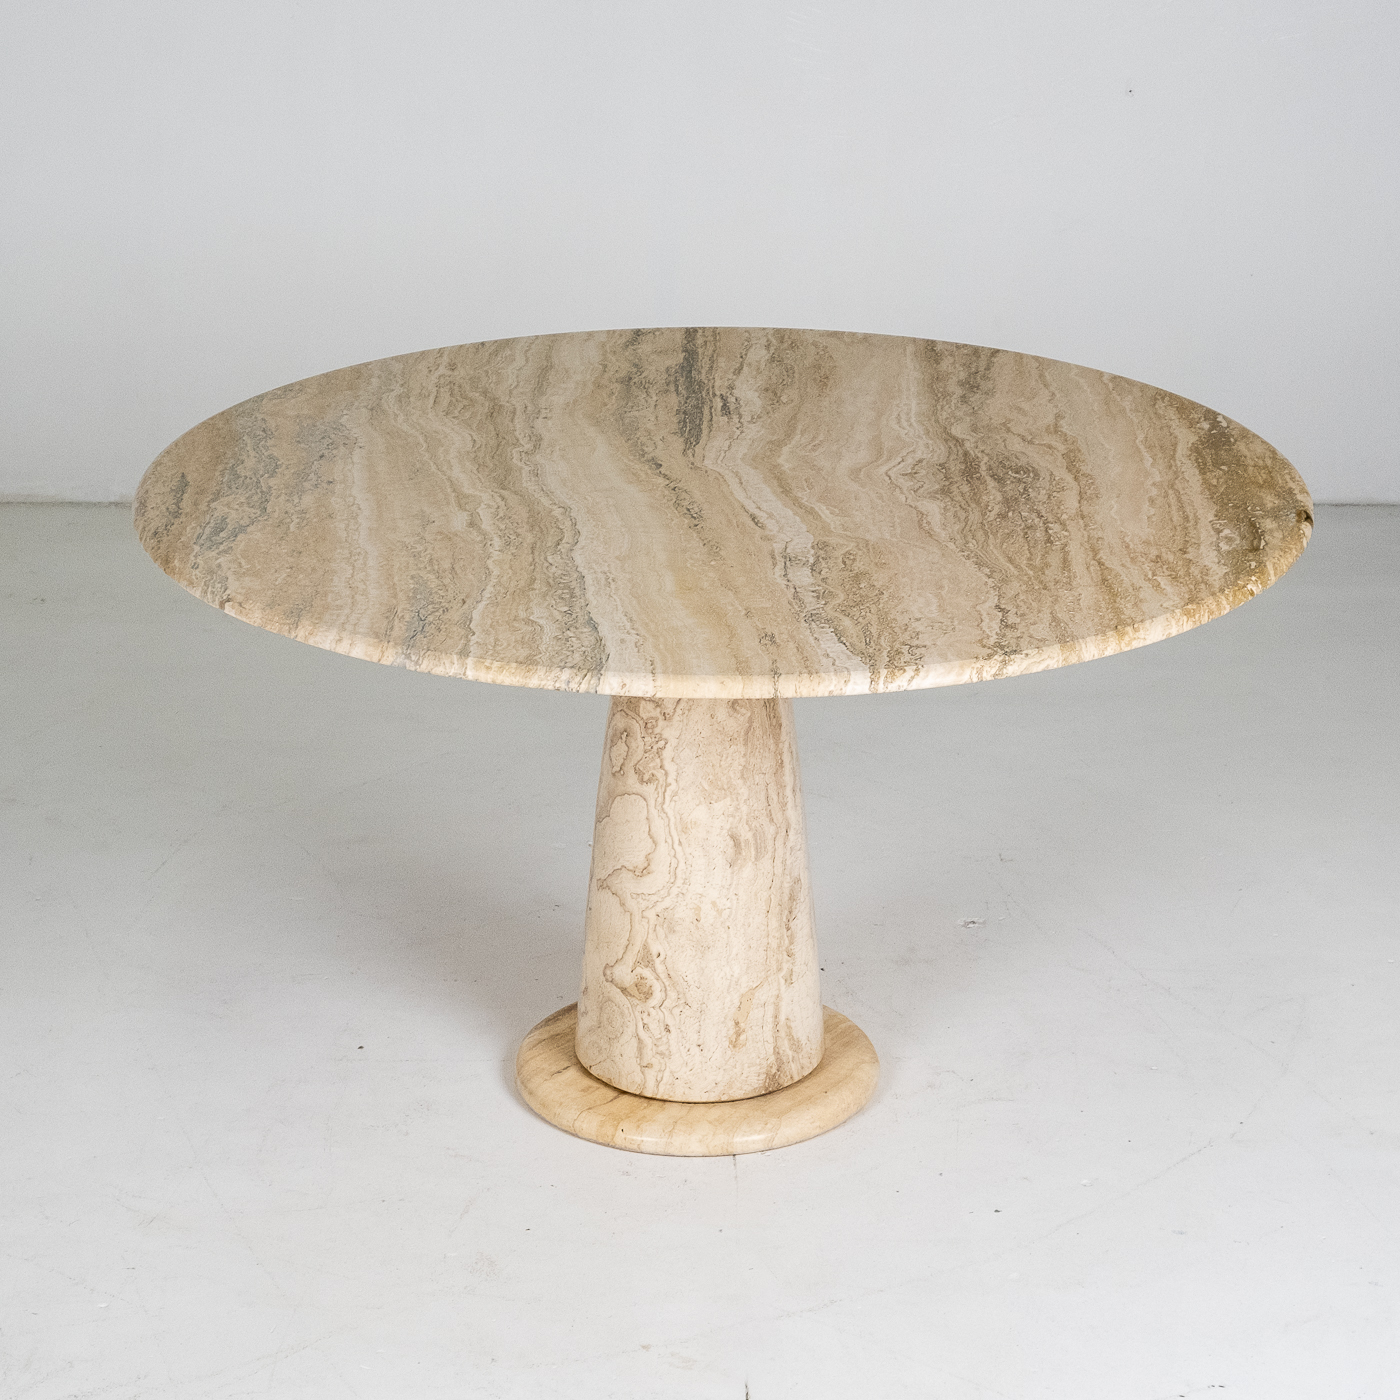 Round Travertine Dining Table In The Style Of The M1 By Angelo Mangiarotti, 1980s, Italy 78